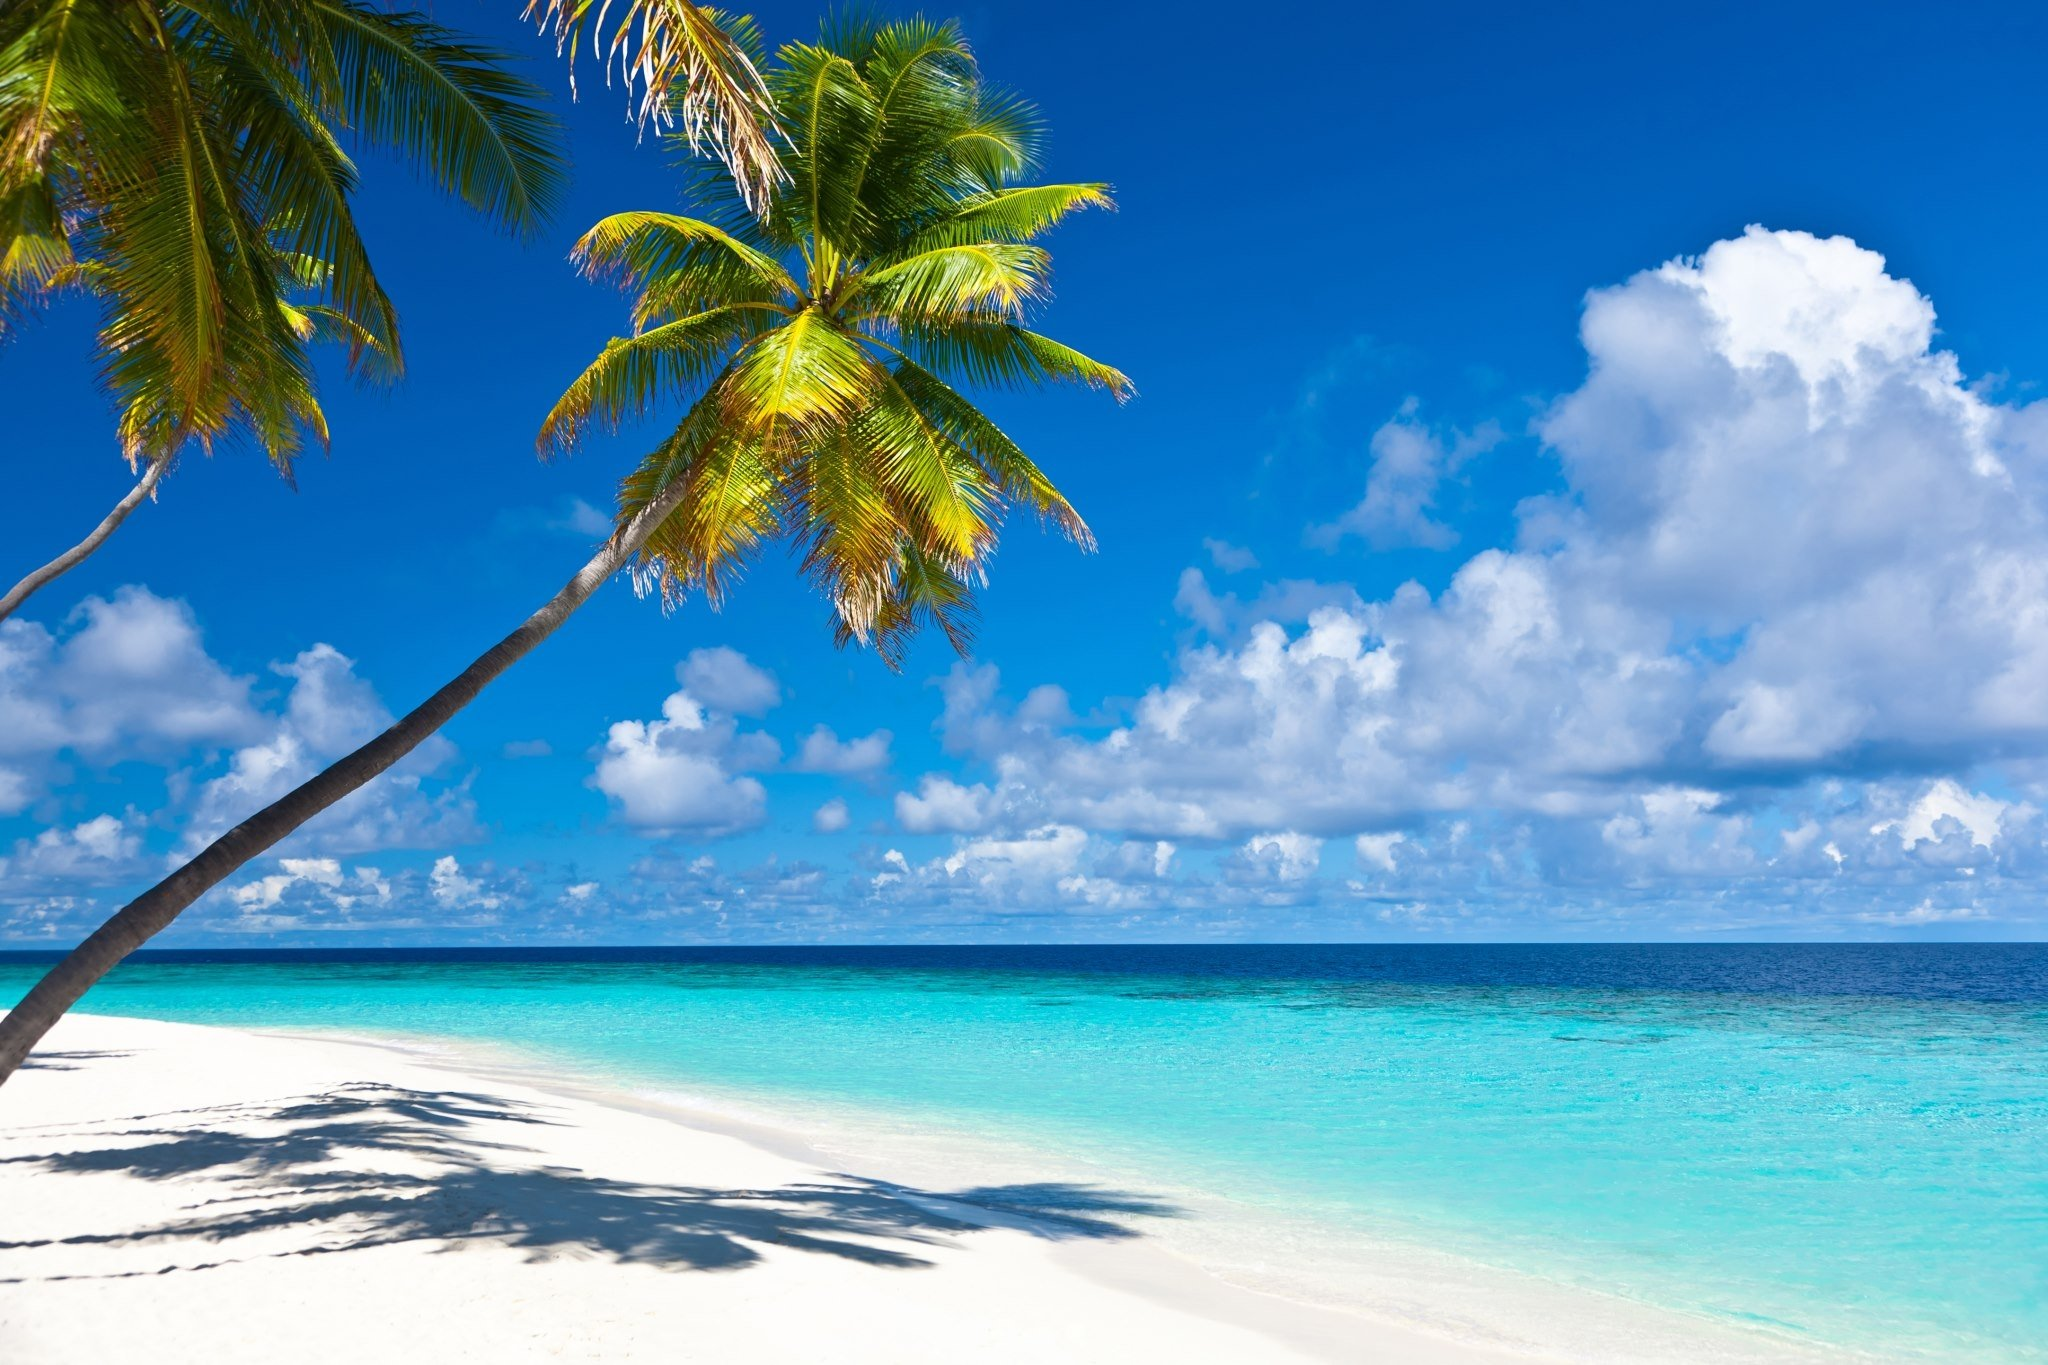 Caribbean Islands HD Wallpapers Backgrounds 2048x1365